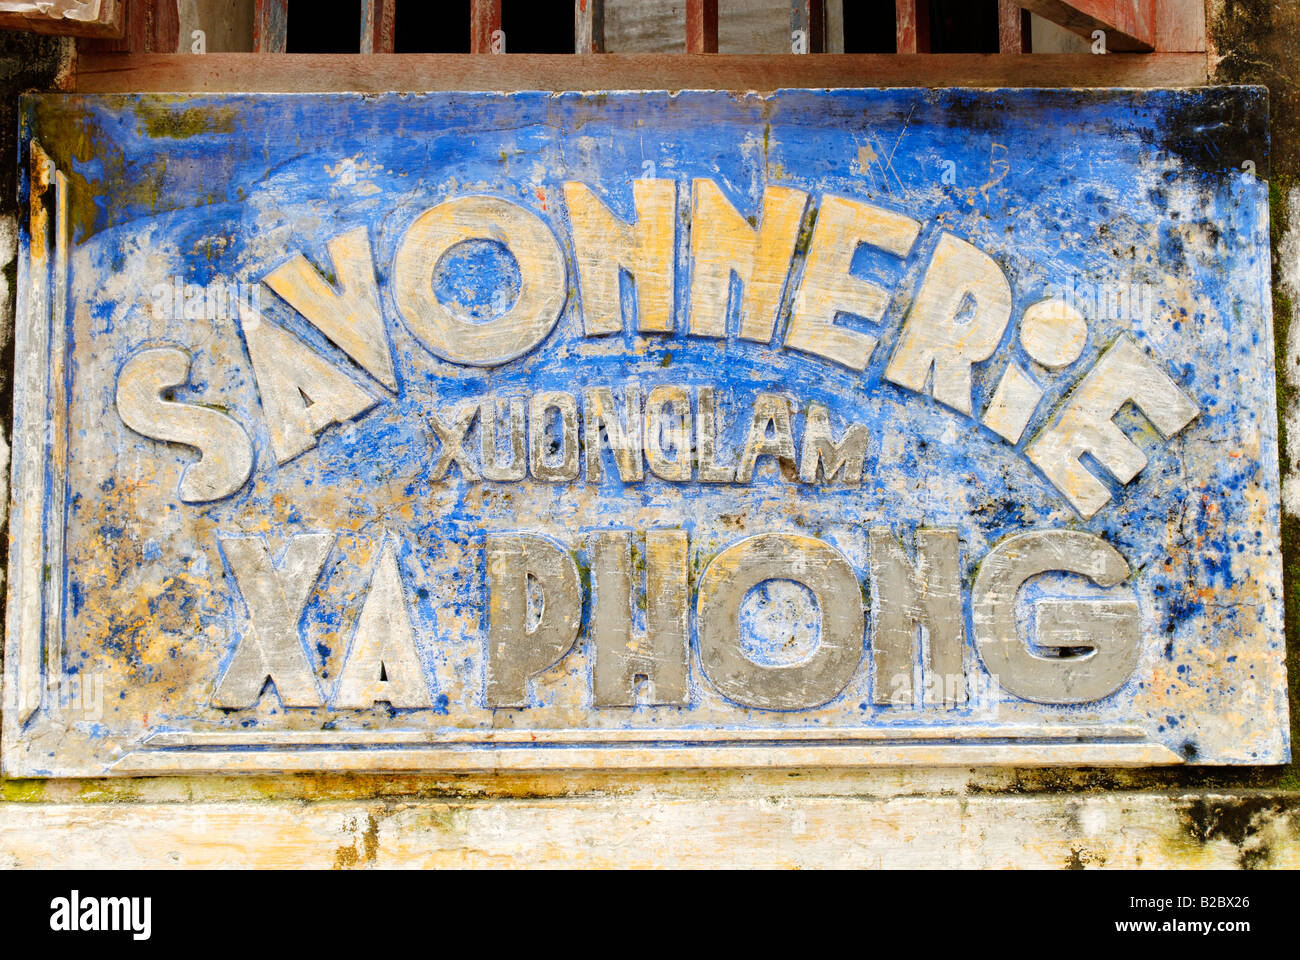 Old french advertising sign from a perfumerie, Hoi An, UNESCO World Heritage Site, Vietnam, Asia - Stock Image